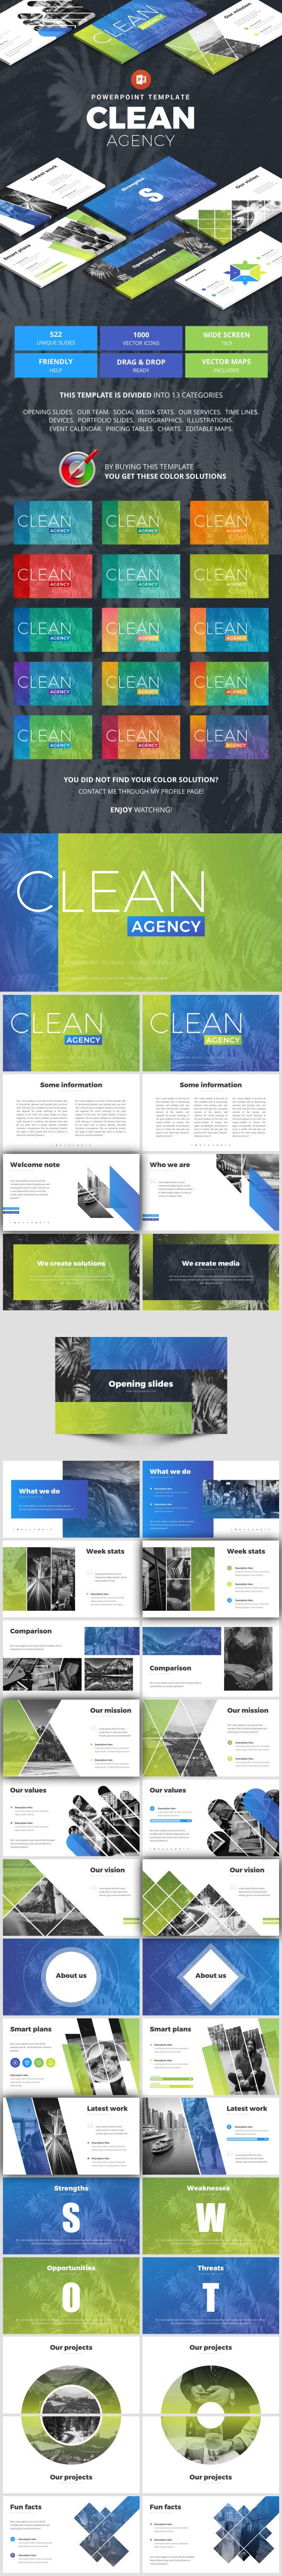 Clean Agency - Business PowerPoint Templates